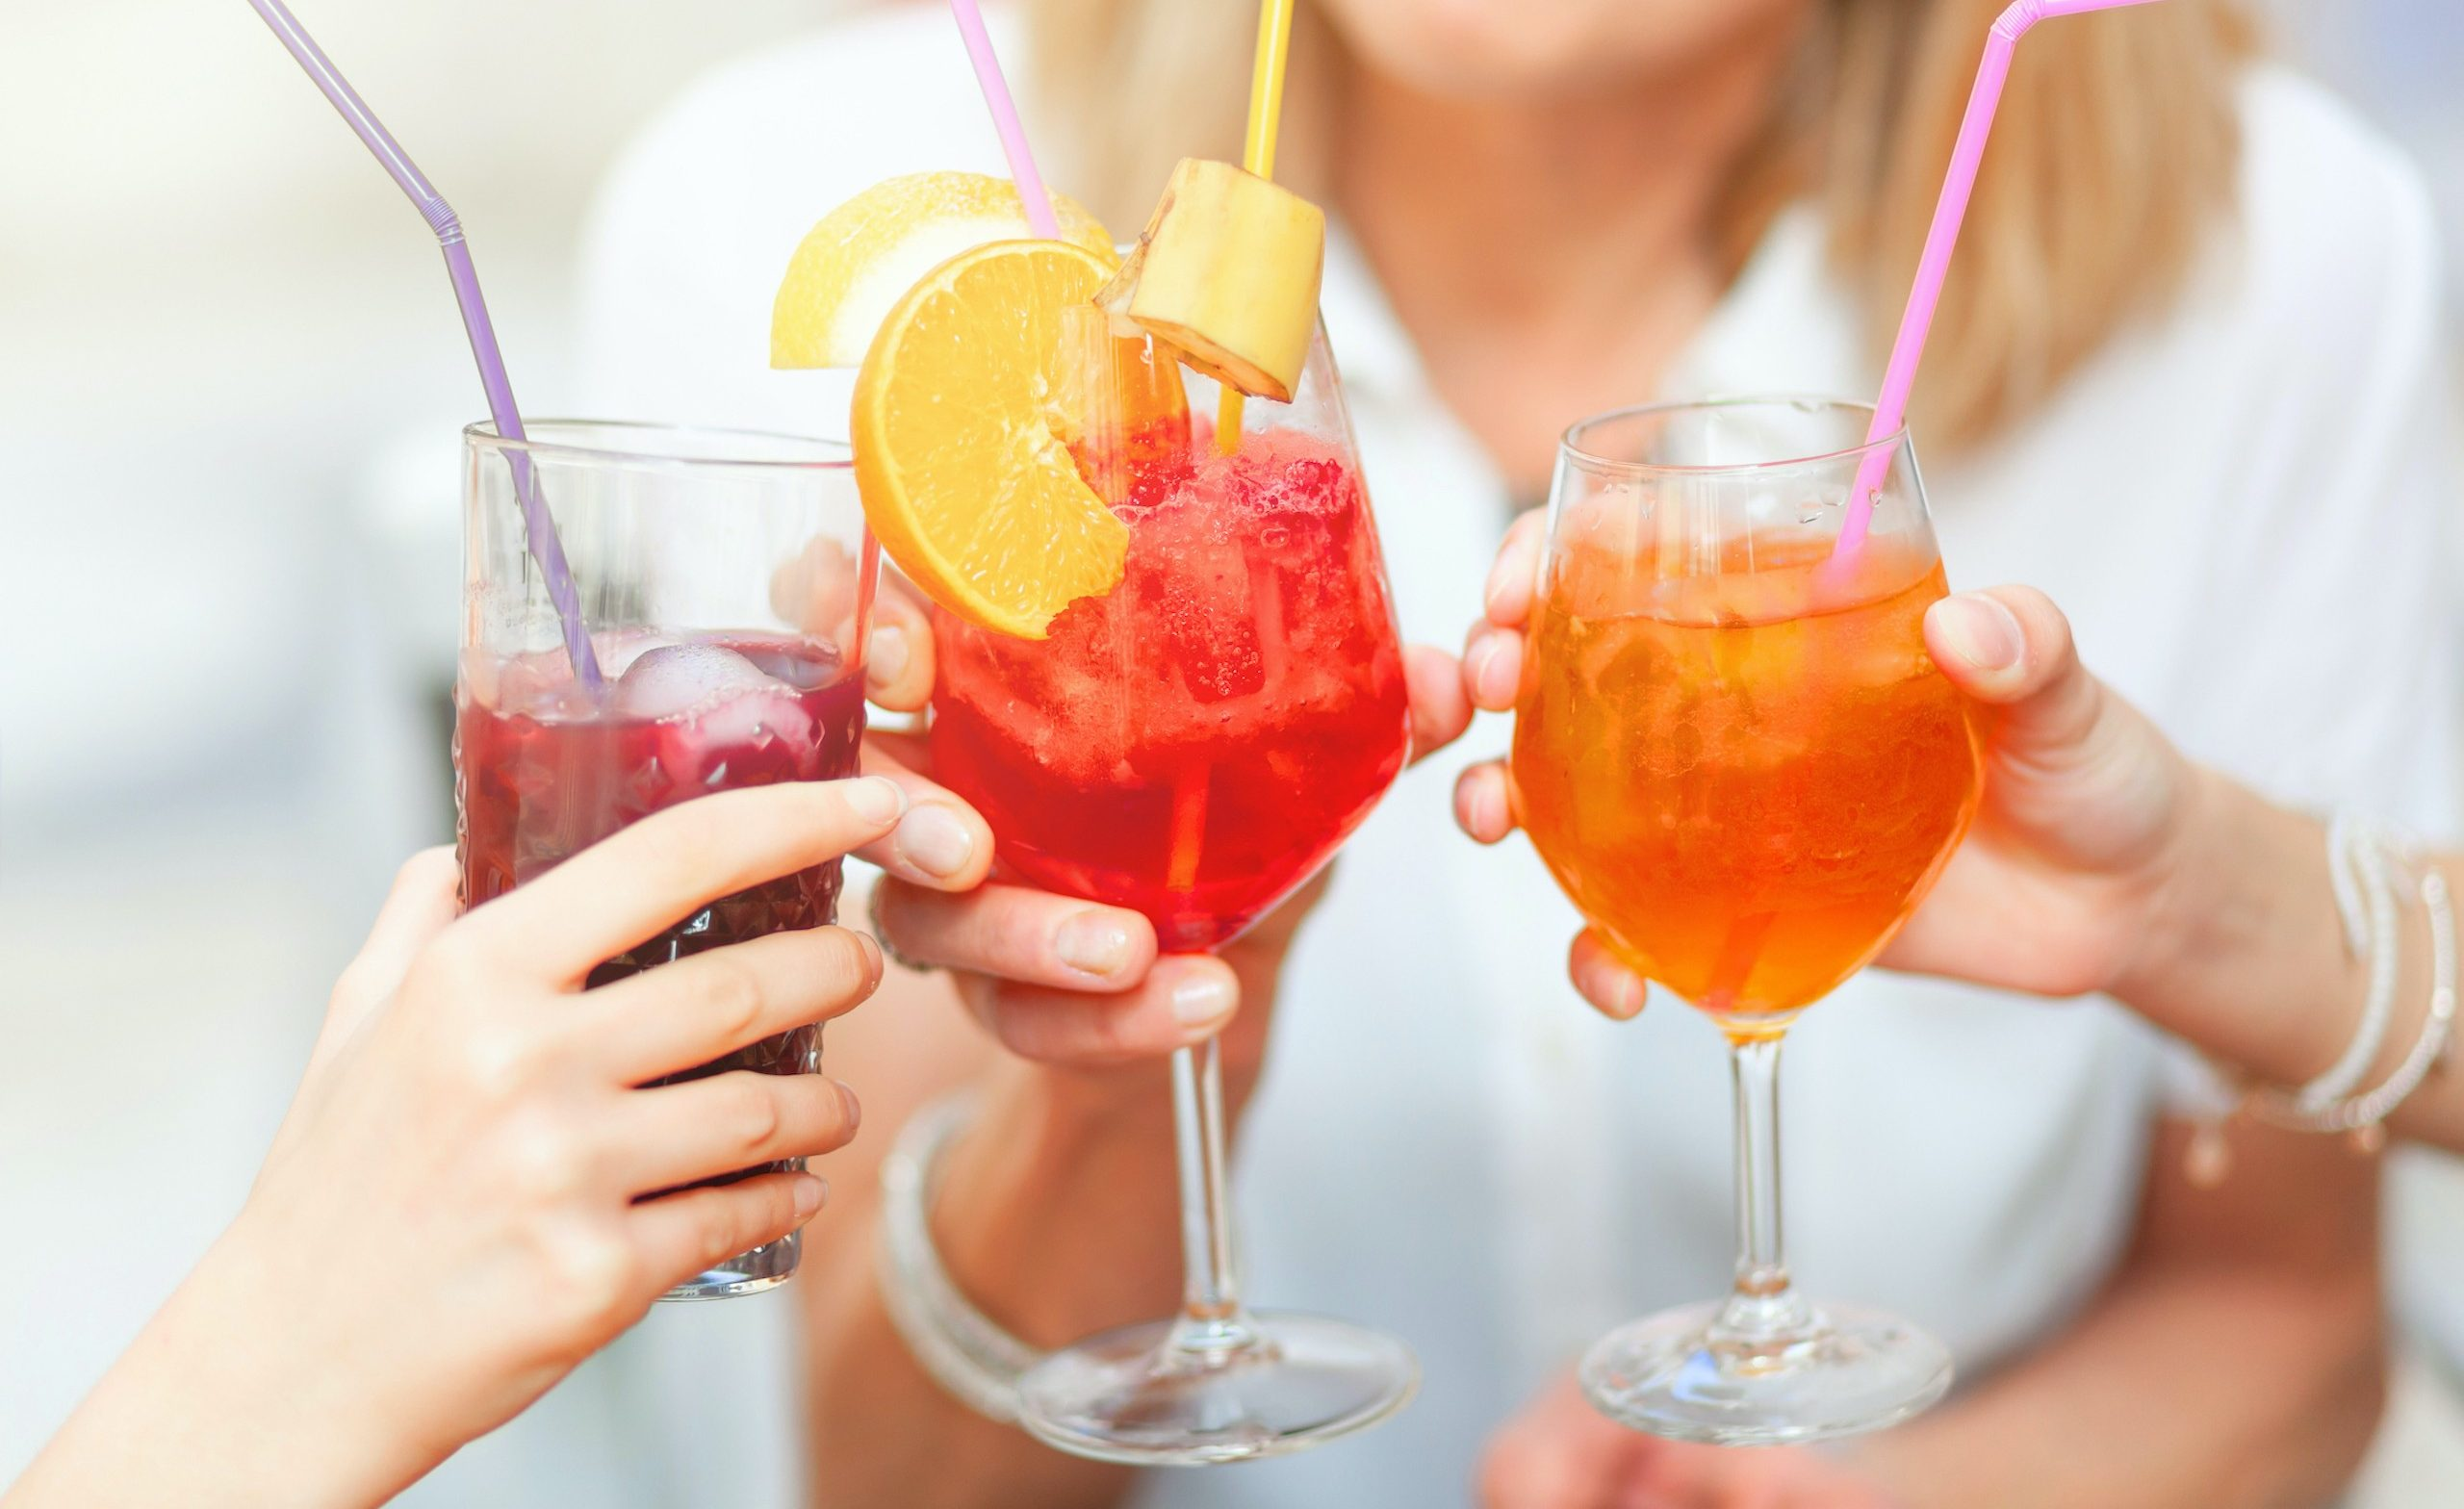 Cheers with different colored cocktails, red spritz, blueberry and orange spritz.